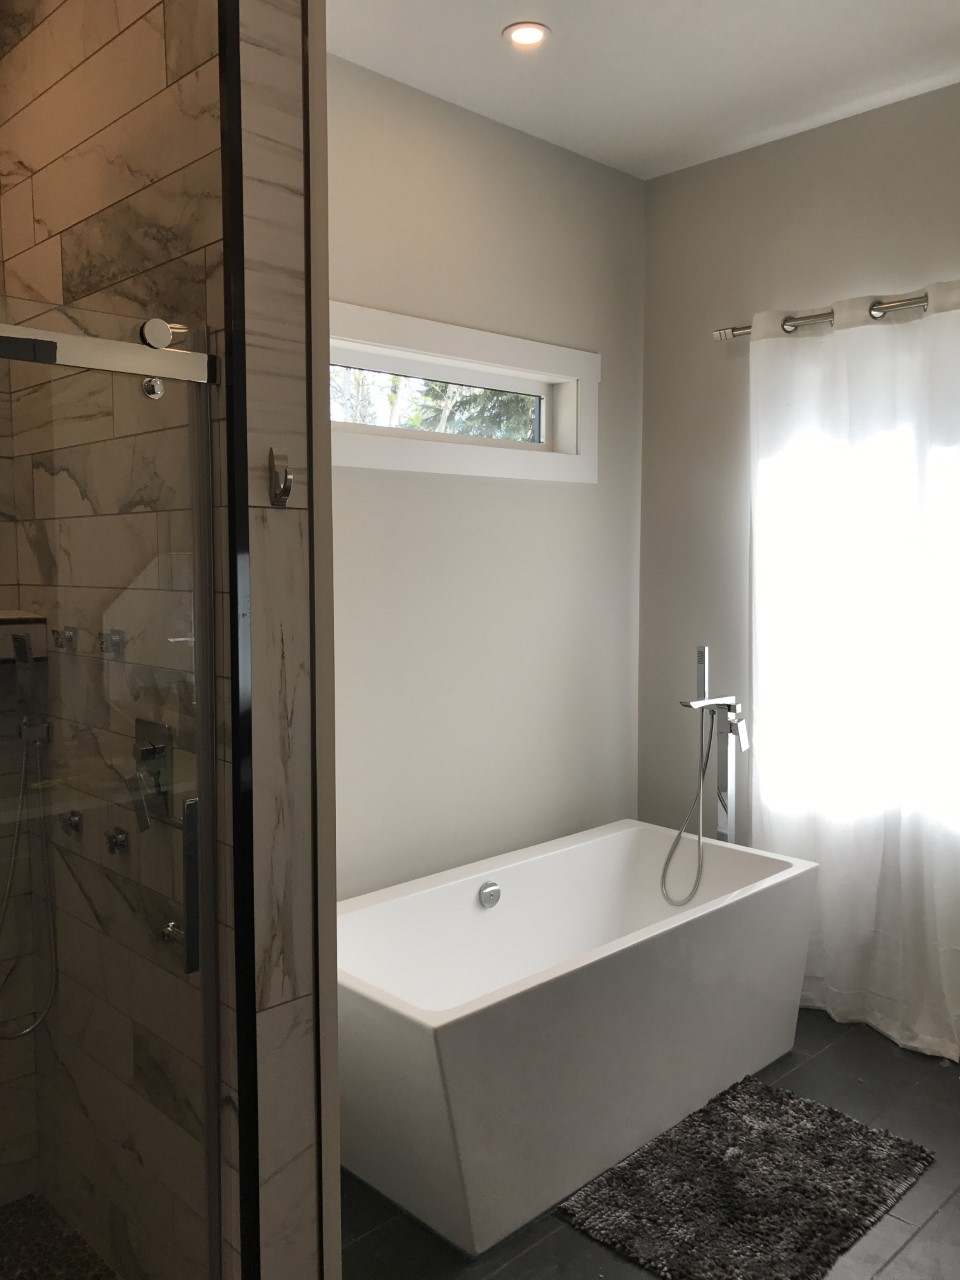 large soaker tub in new bathroom